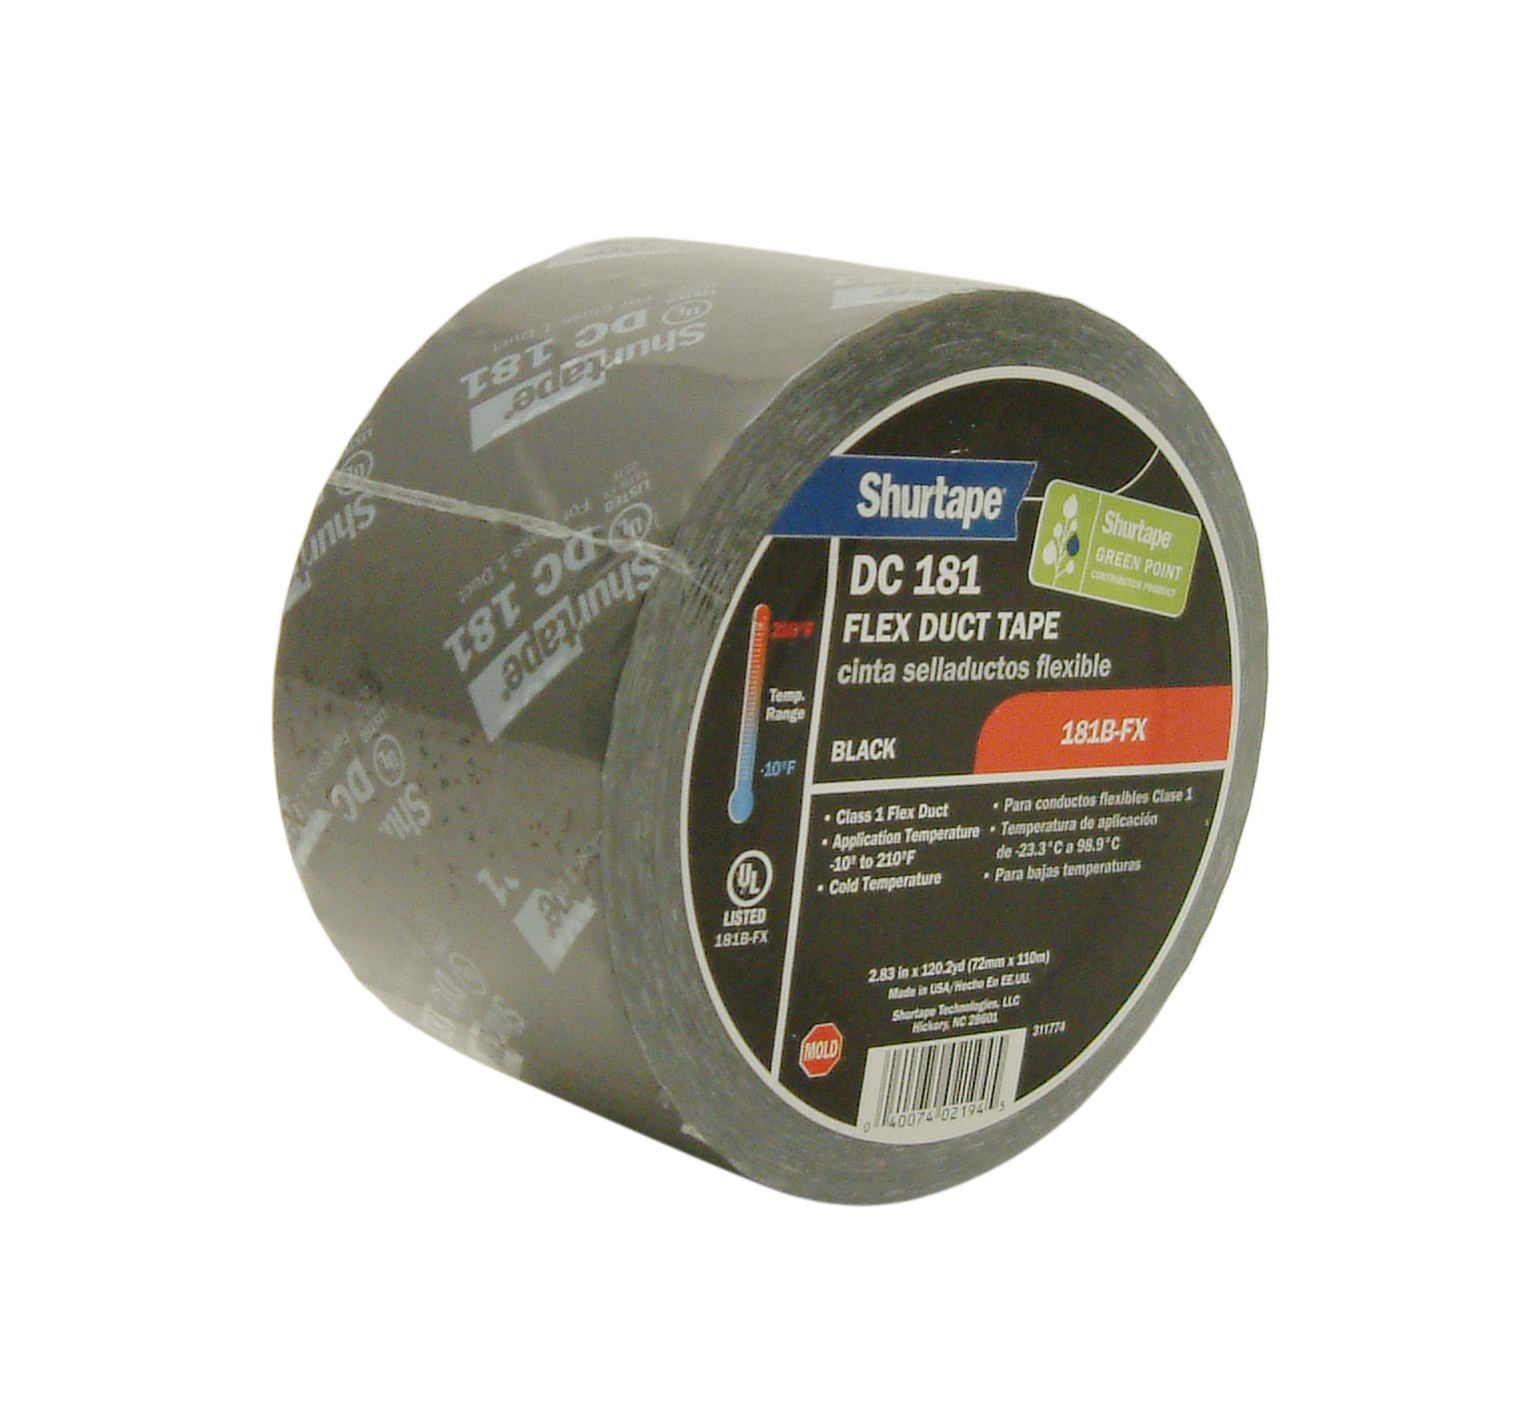 Shurtape DC-181 UL 181B-FX Listed Film Tape: 3 in. x 120 yds. (Black with White printing)